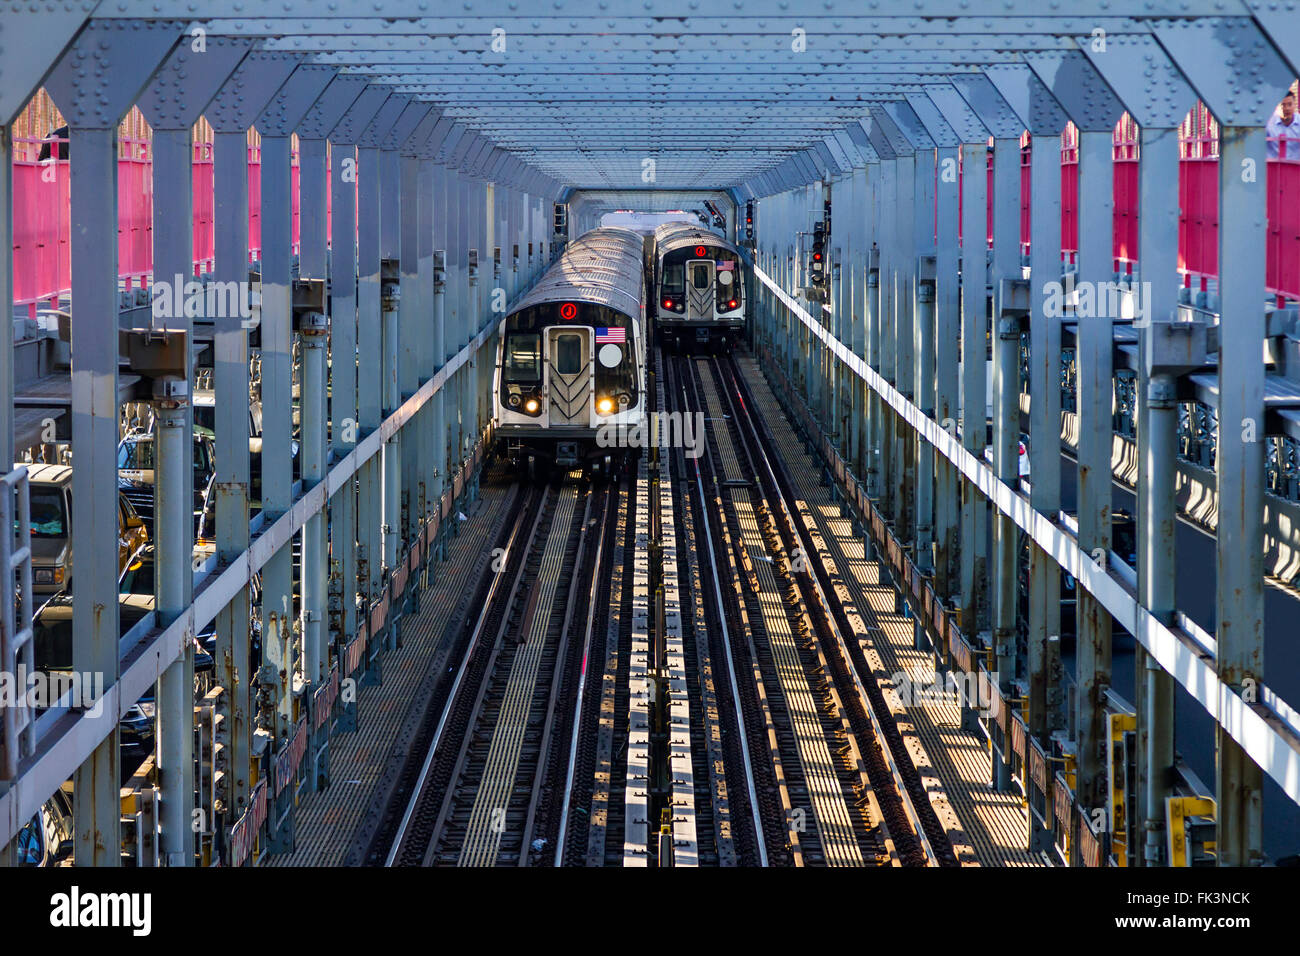 Subway cars crossing the Williamsburg Bridge between Brooklyn and Manhattan in New York City - Stock Image